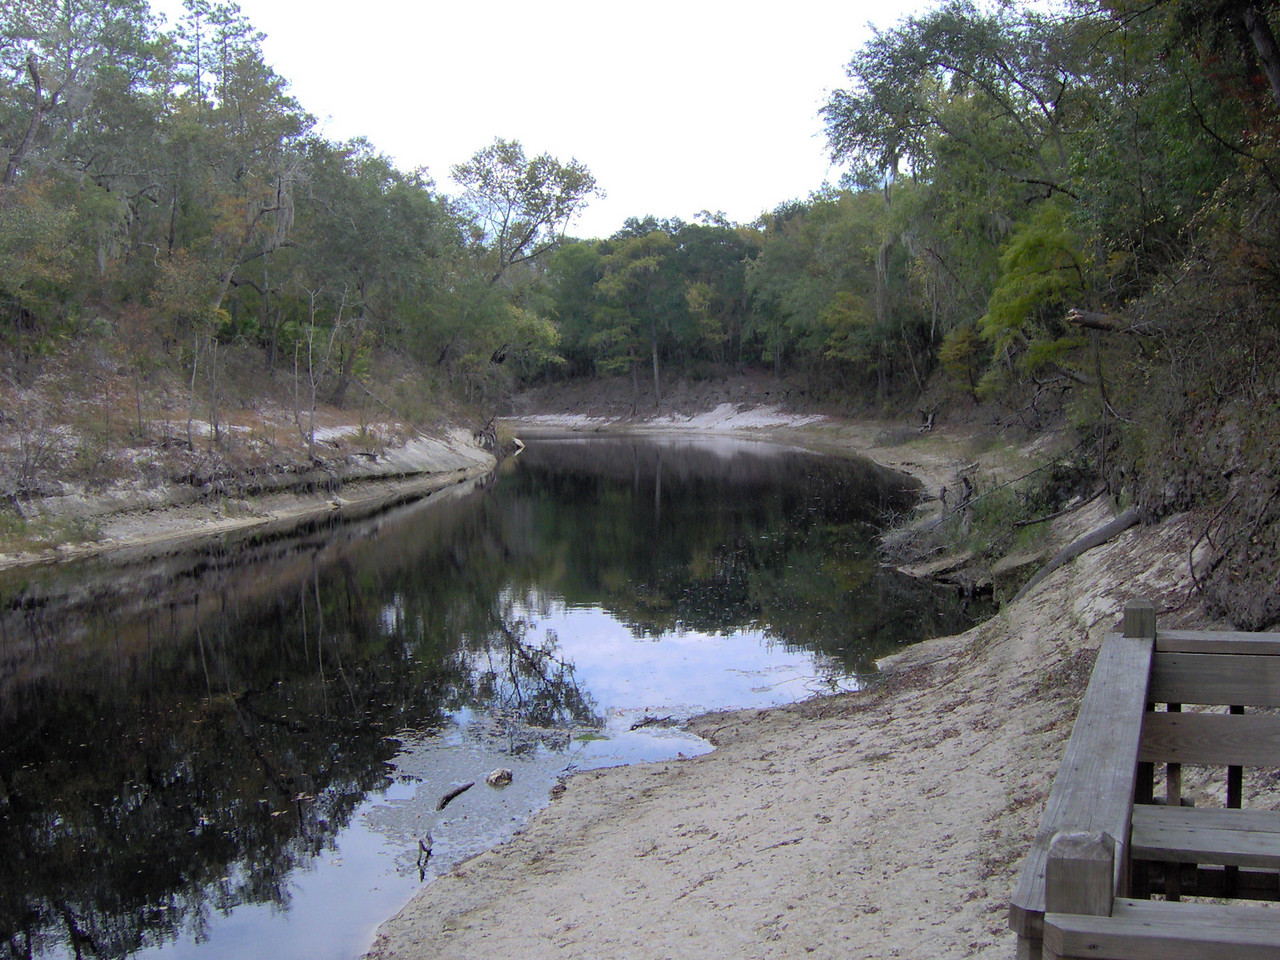 The Suwannee River during low water<br /> PHOTO CREDIT: Bruce Lyon / Florida Trail Association